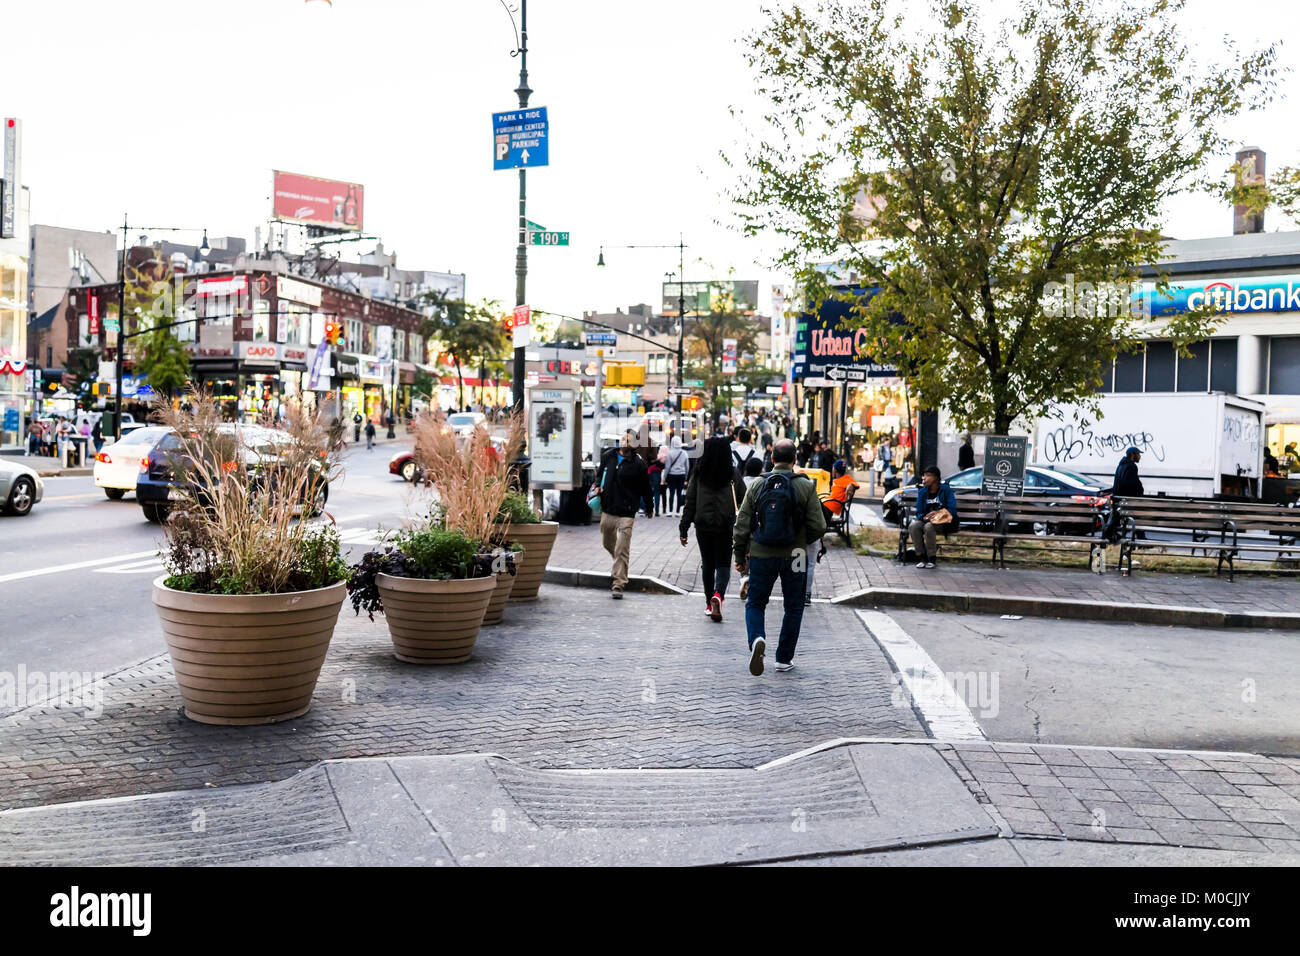 Poor Neighborhood Usa Stockfotos & Poor Neighborhood Usa Bilder - Alamy